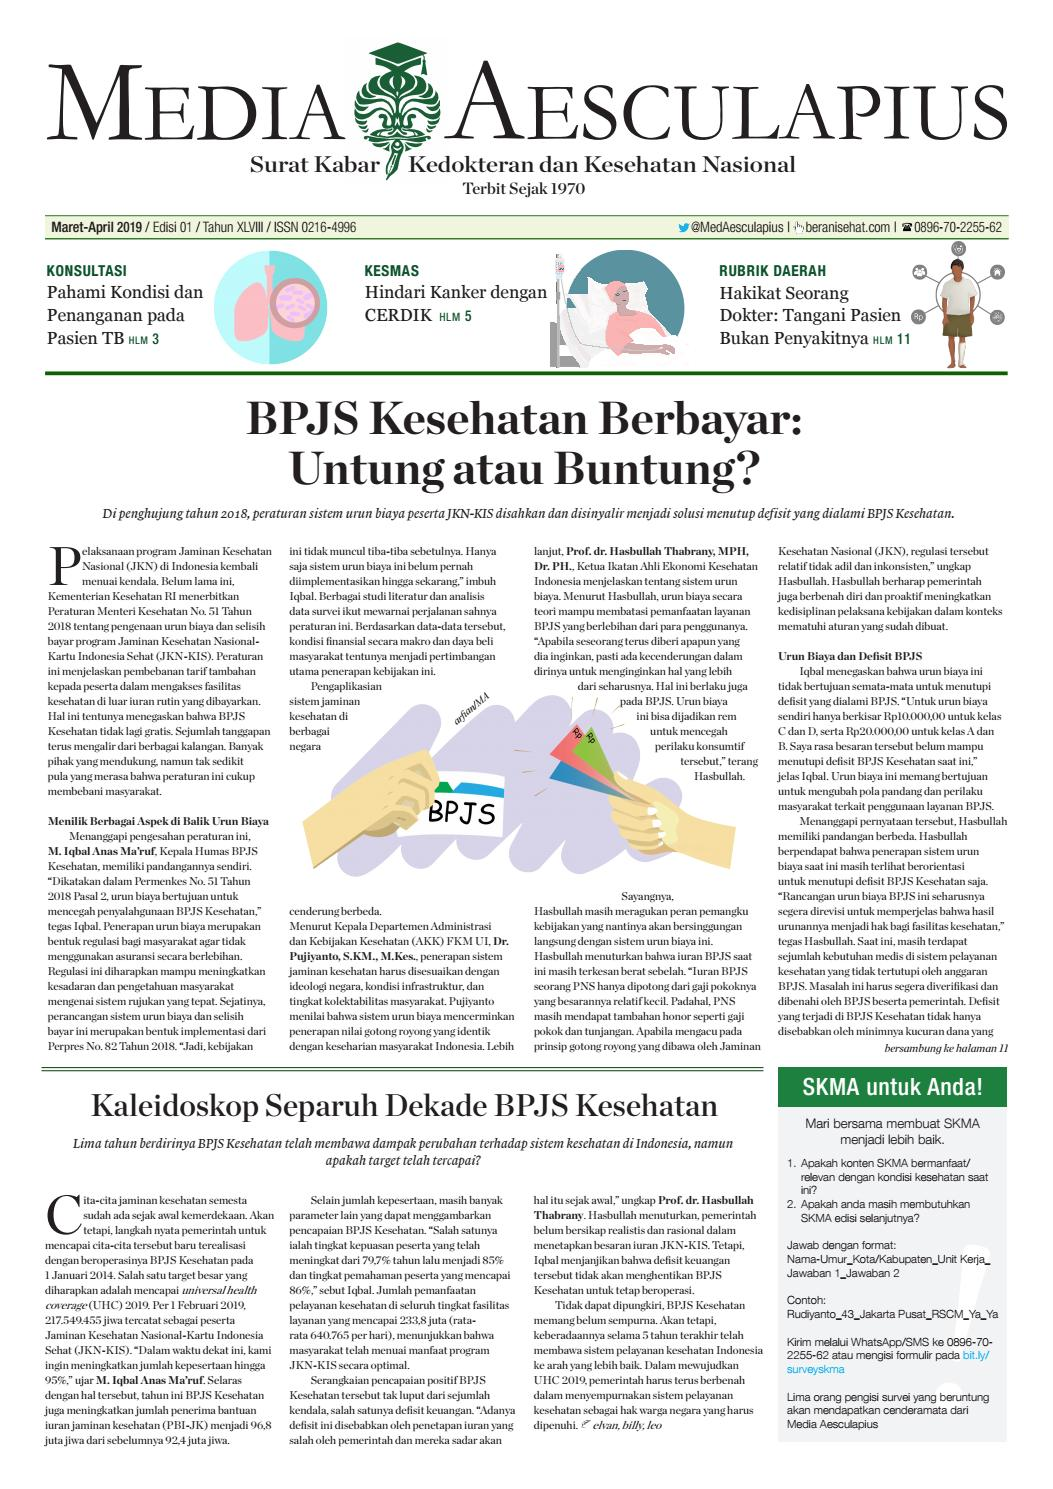 Surat Kabar Media Aesculapius SKMA Edisi Maret April 2019